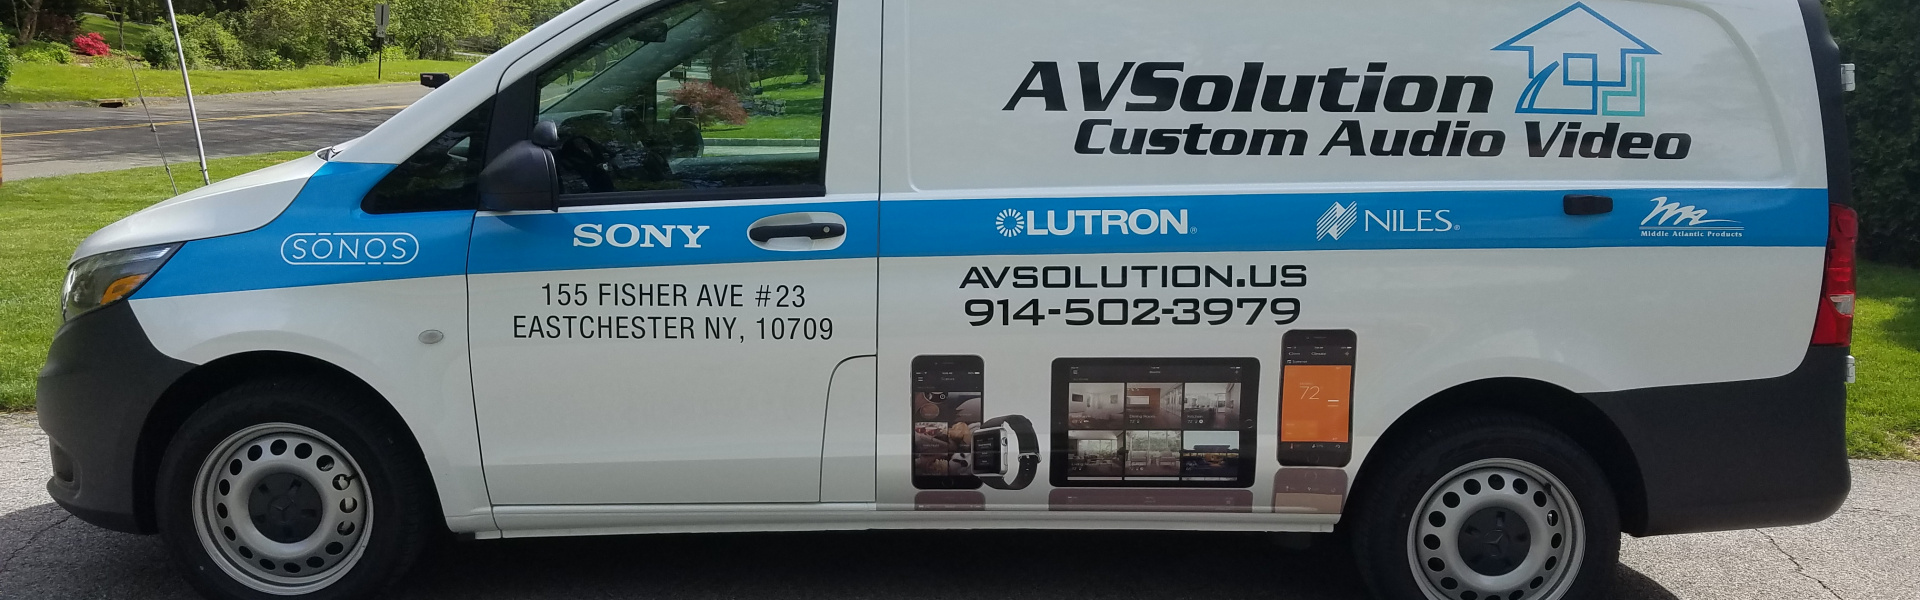 AV installation & smart home services Westchester: AV Solution